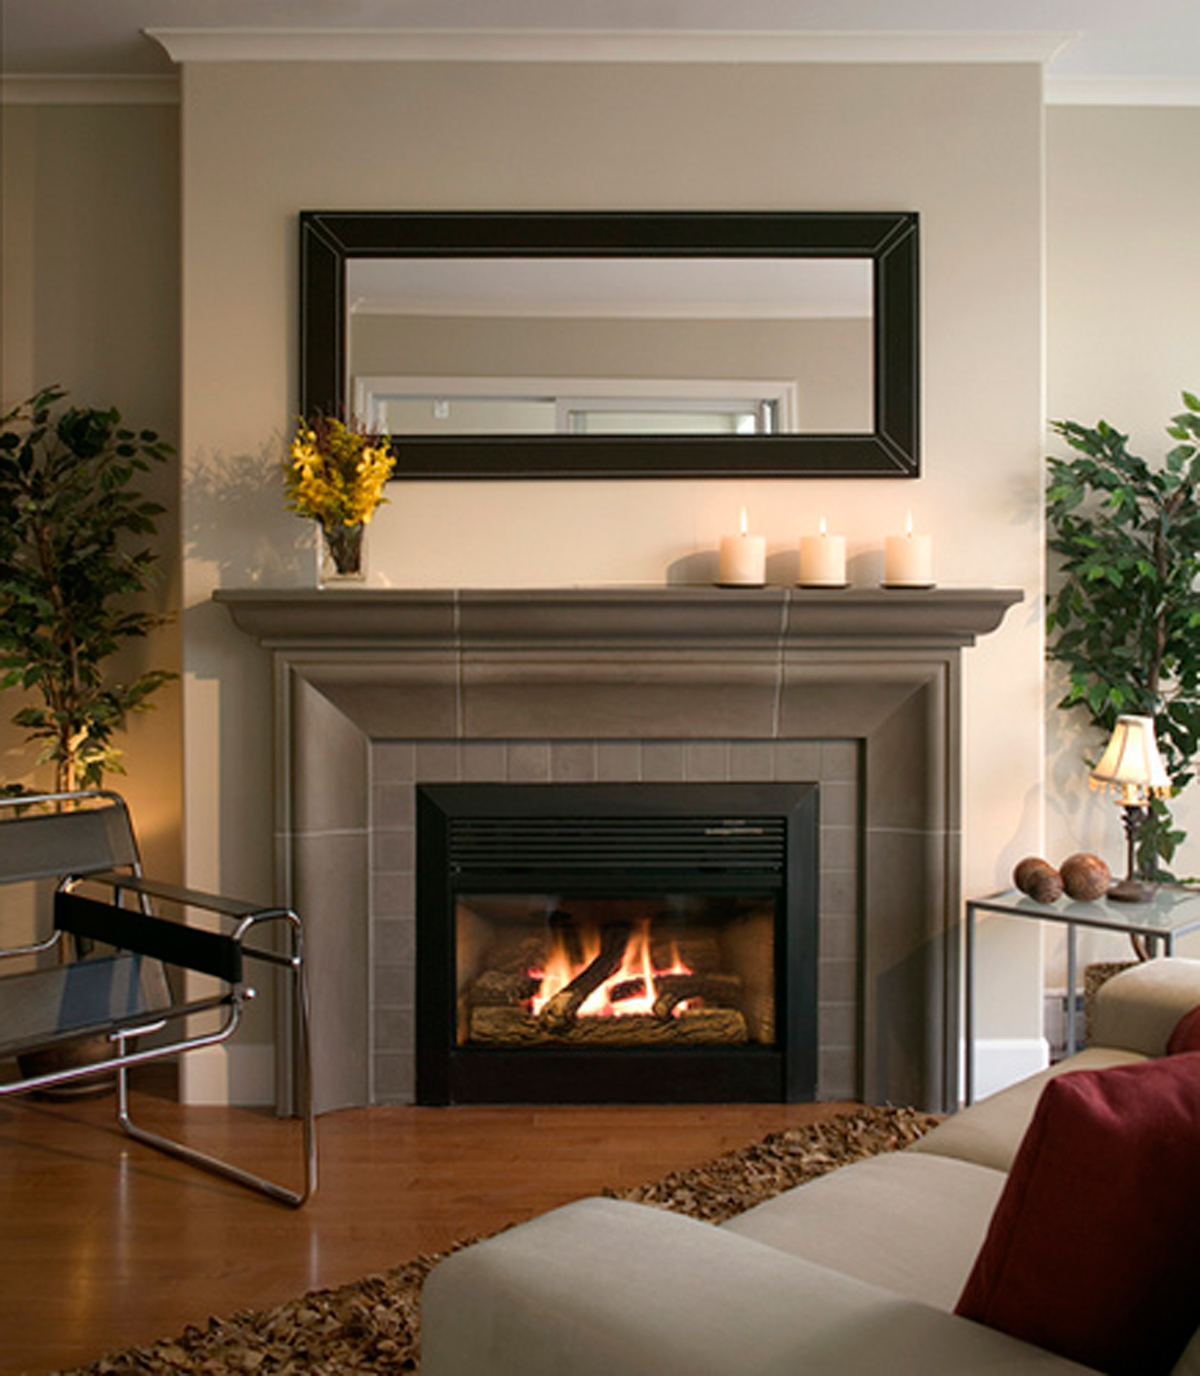 Fireplace Hearth Ideas: Contemporary Gas Fireplace Designs With Fascinating